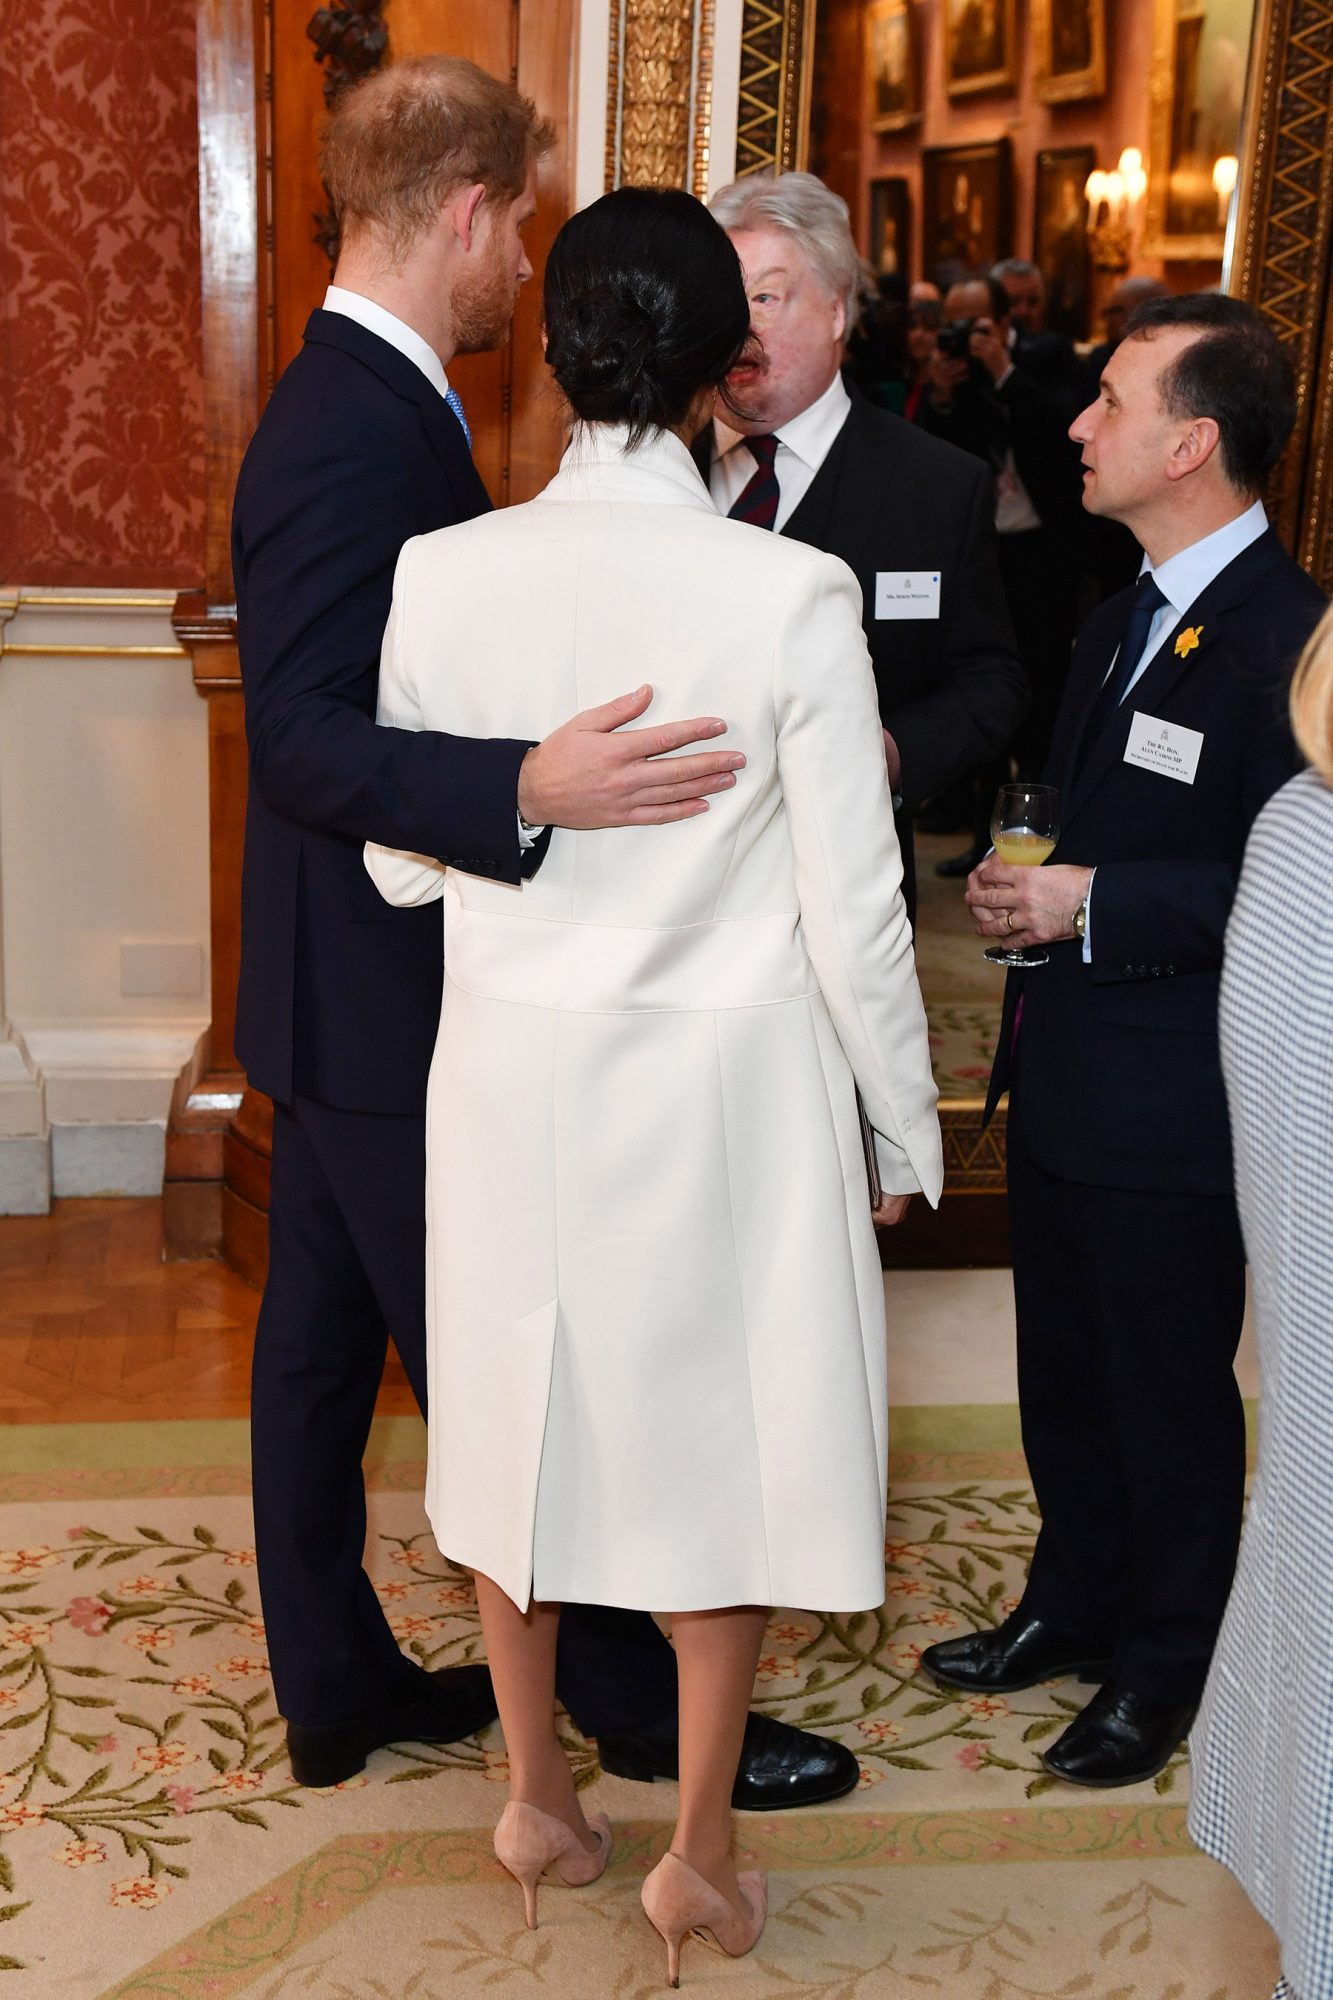 50th Anniversary of the Investiture of Prince Charles, Buckingham Palace, London, UK - 05 Mar 2019